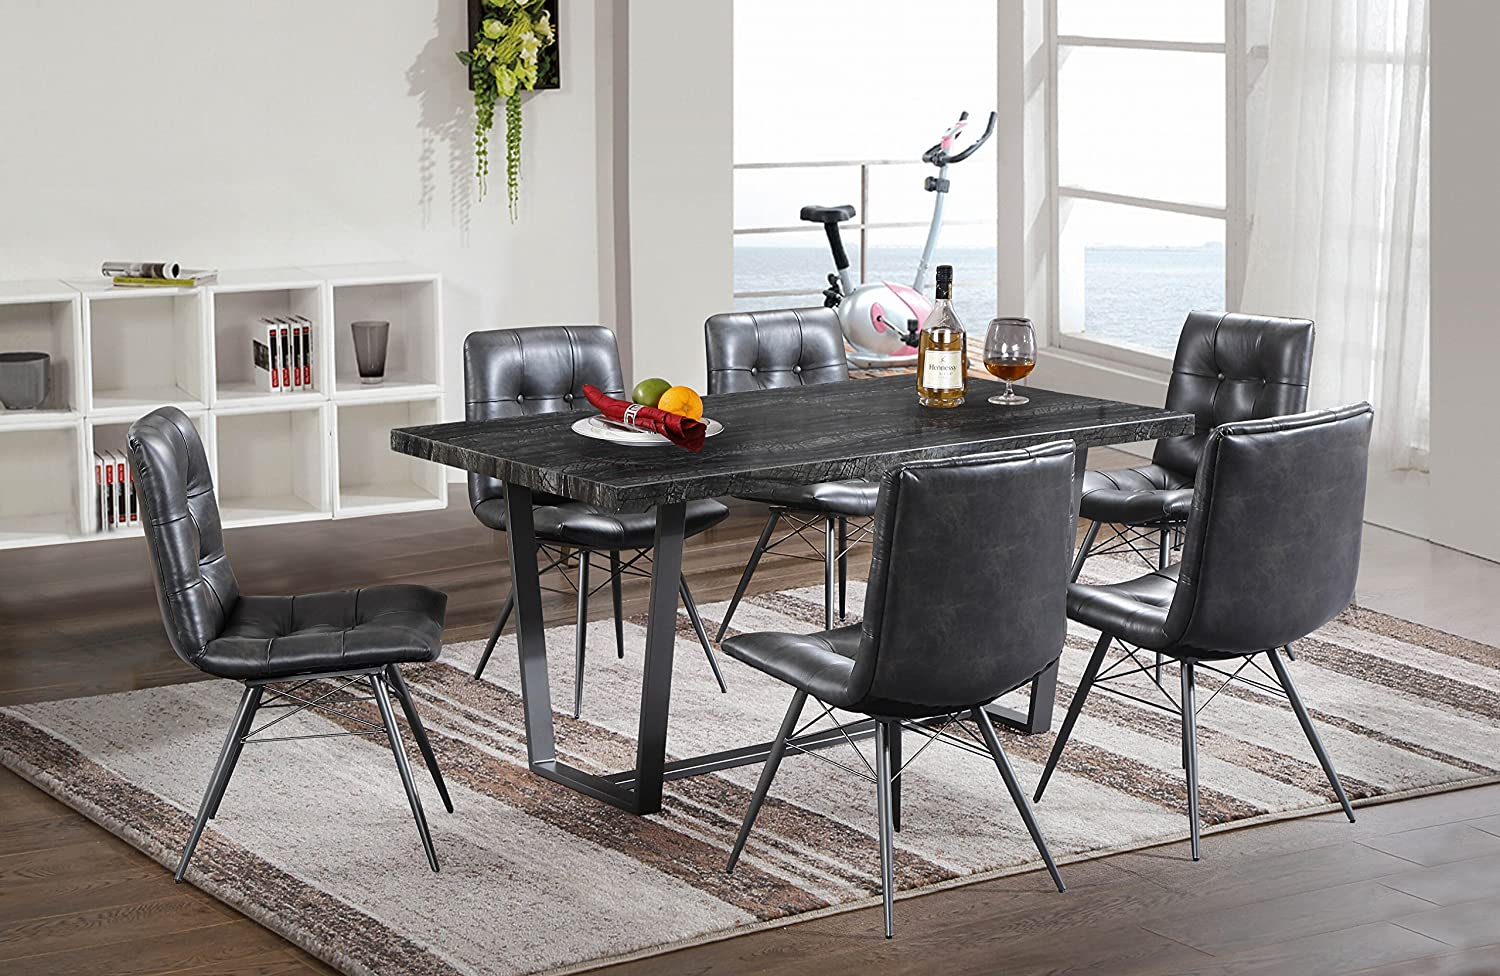 Oliver Smith - Marble Collection - 7 Piece Dining - Table and 6 Leather Chairs - Dinette Table Chairs Antique Washed Oak 801marble